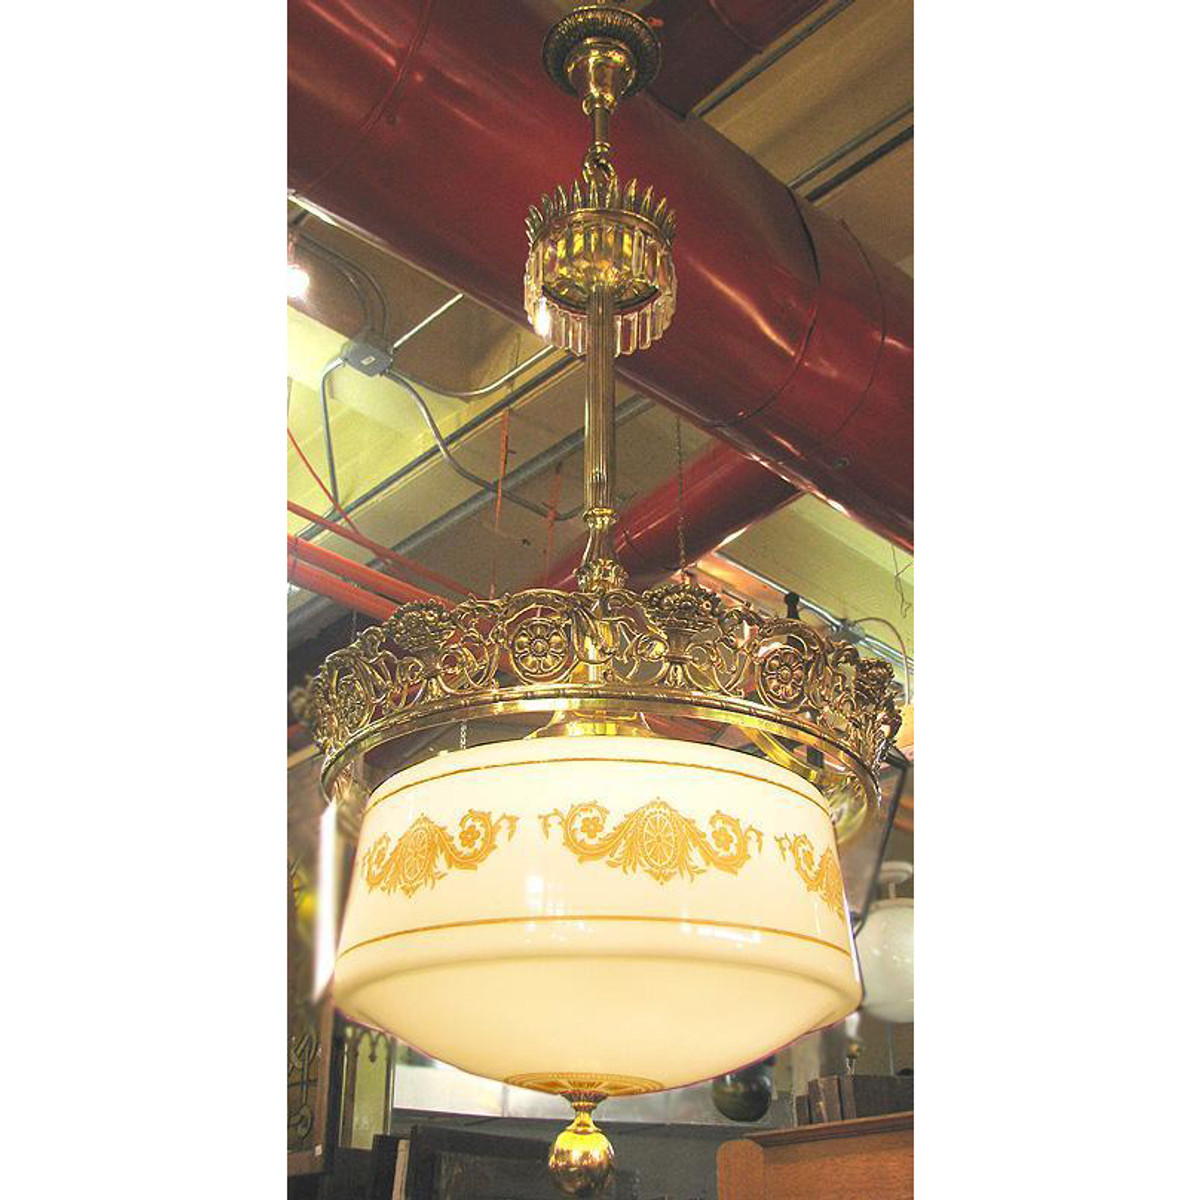 610292 - Large Scale Antique Light Fixture with Milk Glass Globe - Unrestored